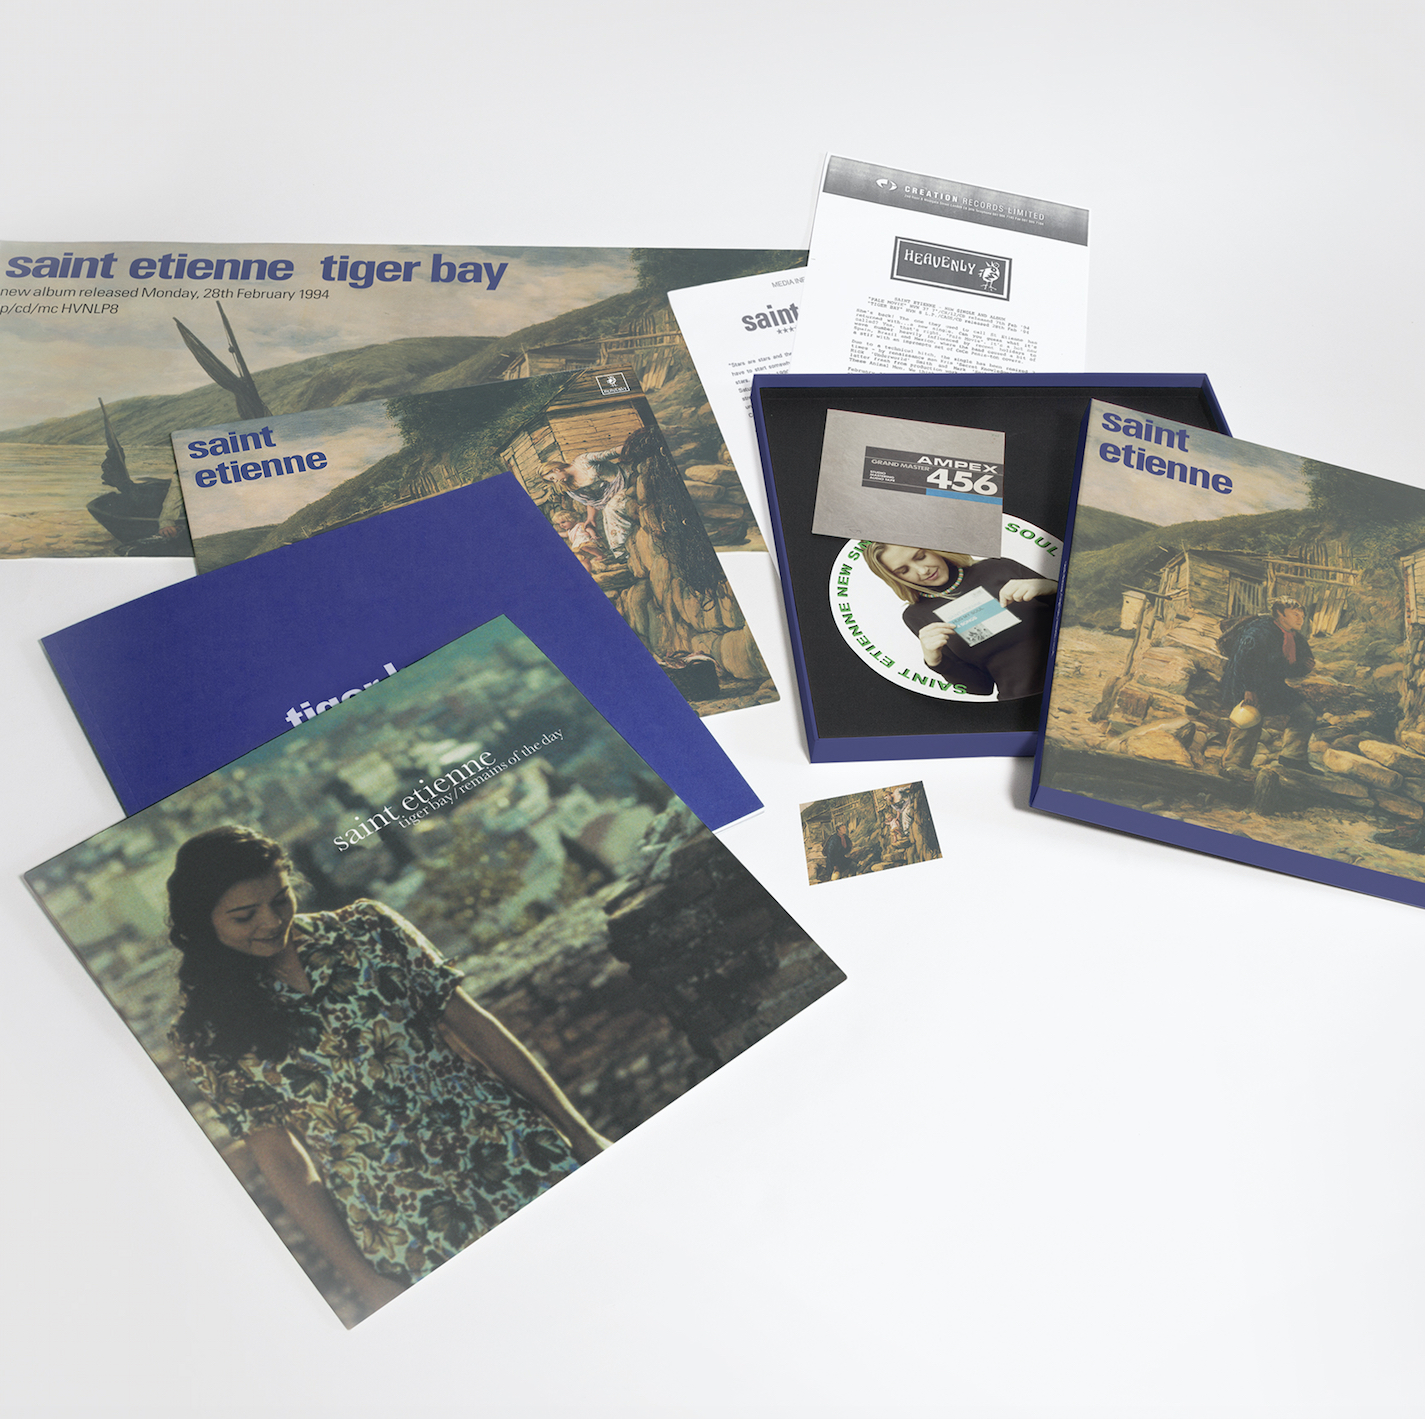 Tiger Bay Vinyl Box Set